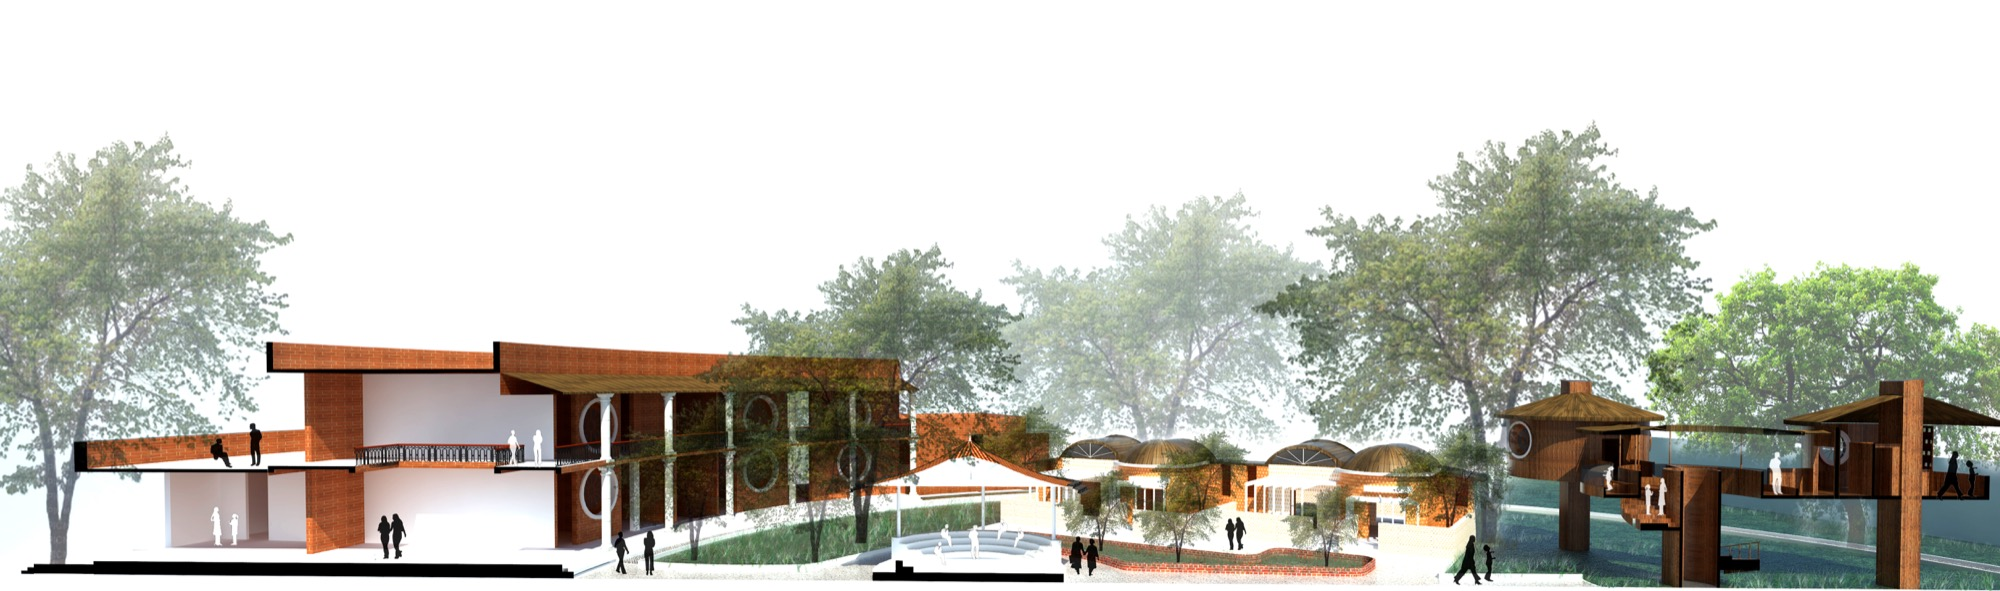 B.Arch Thesis: One Stop Crisis Centre at Pune, by Mehzabeen Sayyed, Allana College of Architecture 15